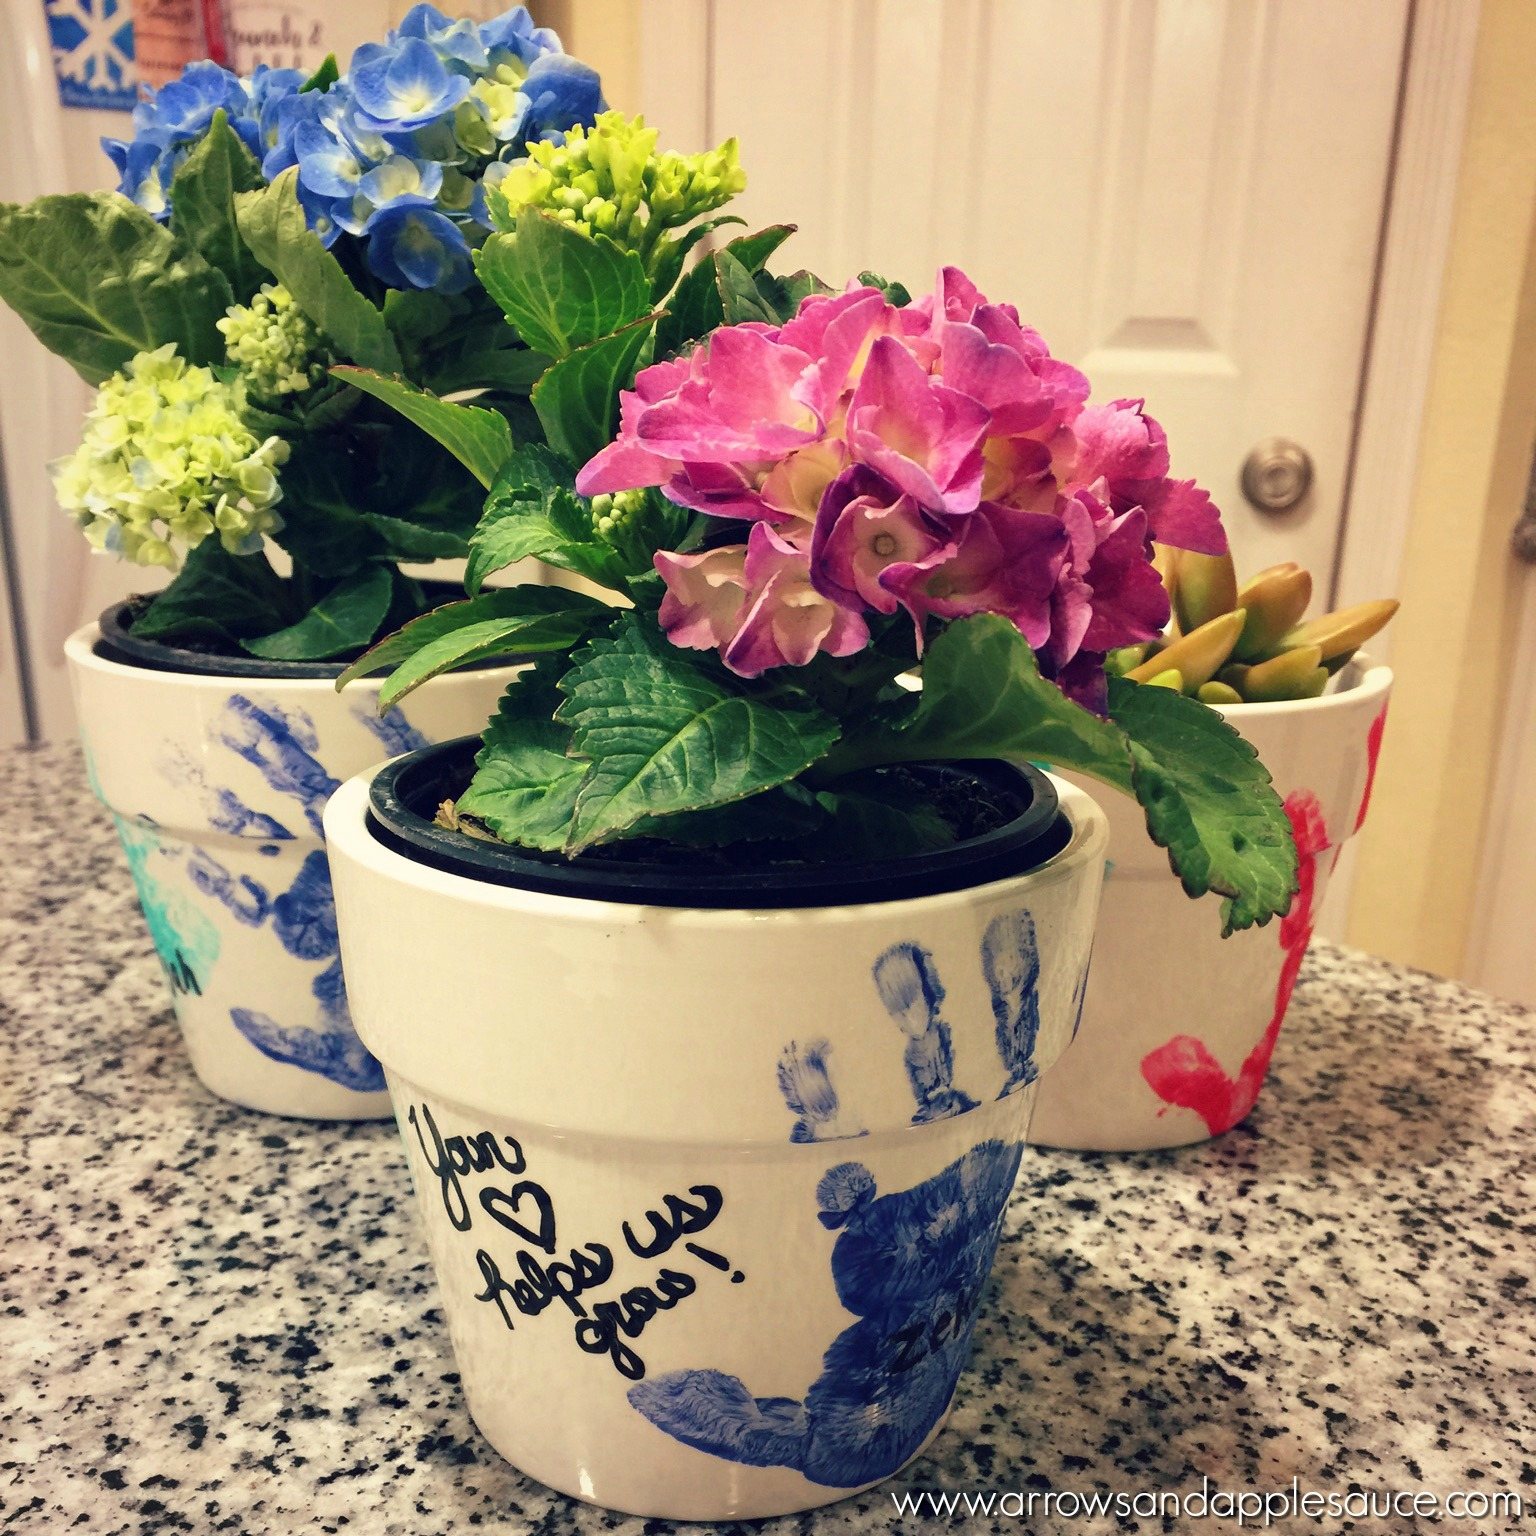 Mothers day hand print flower pots arrows applesauce these fun hand print flower pots are easy to make with your kids and make izmirmasajfo